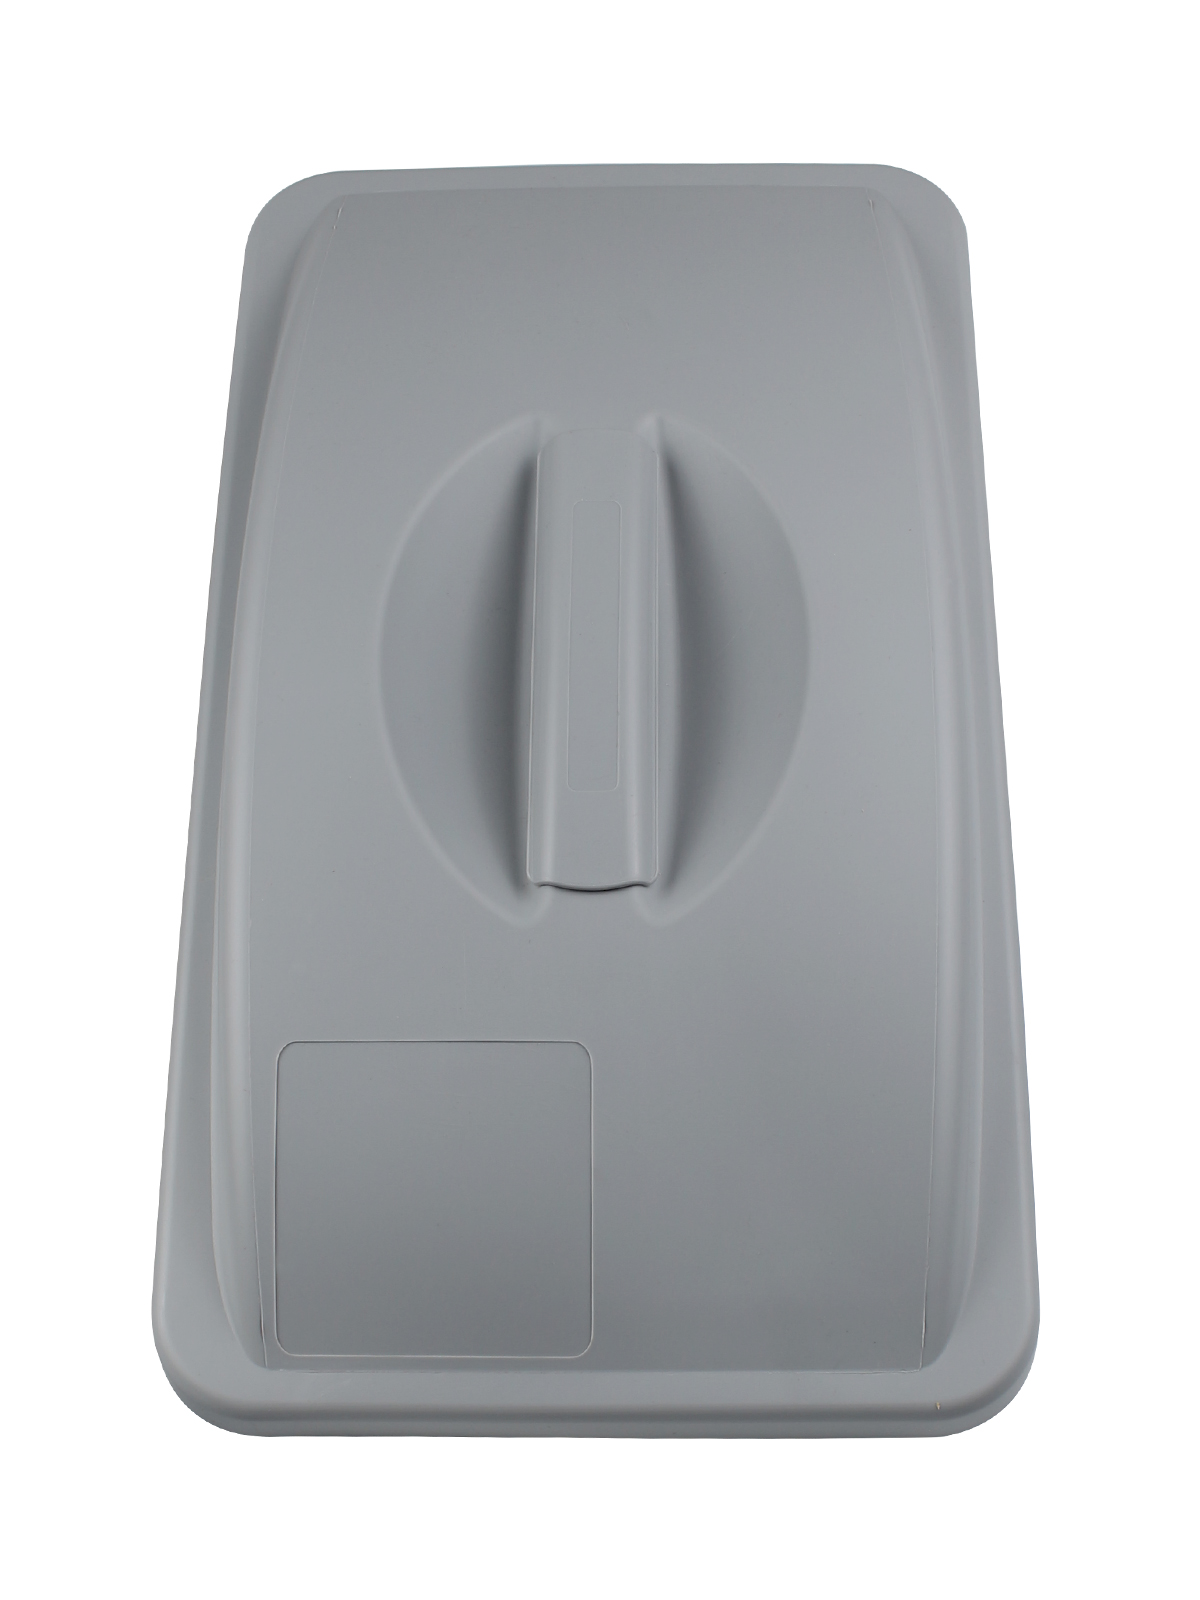 WASTE WATCHER - Lid - Solid - Executive Grey